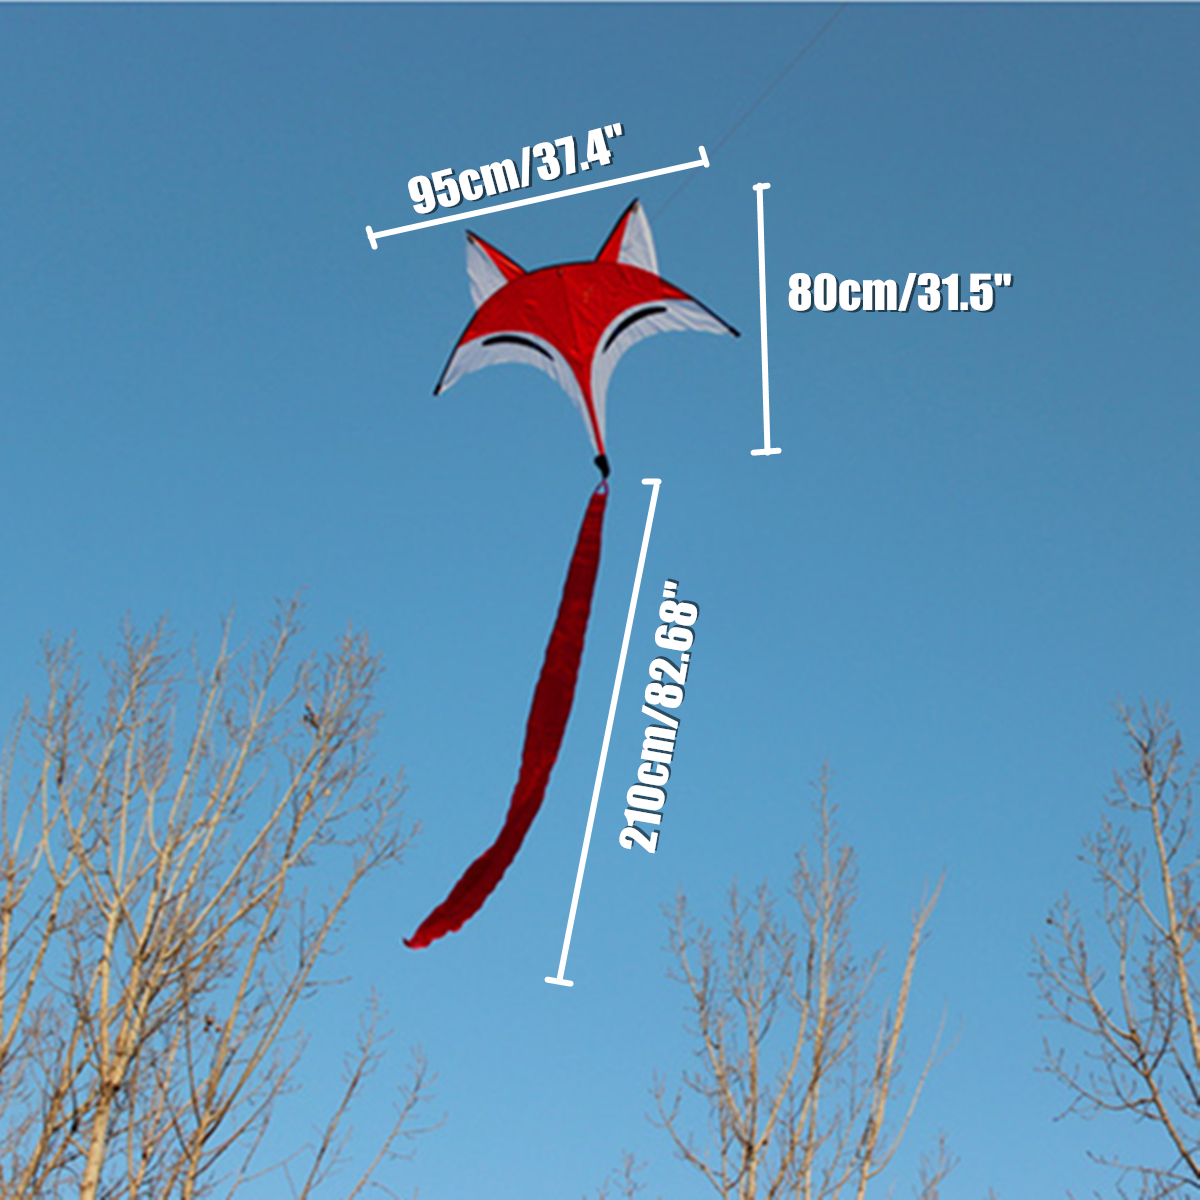 95cmx80cm Outdoor Sport Red Fox Flying Kite Tail Toy Children Kids Game Activity